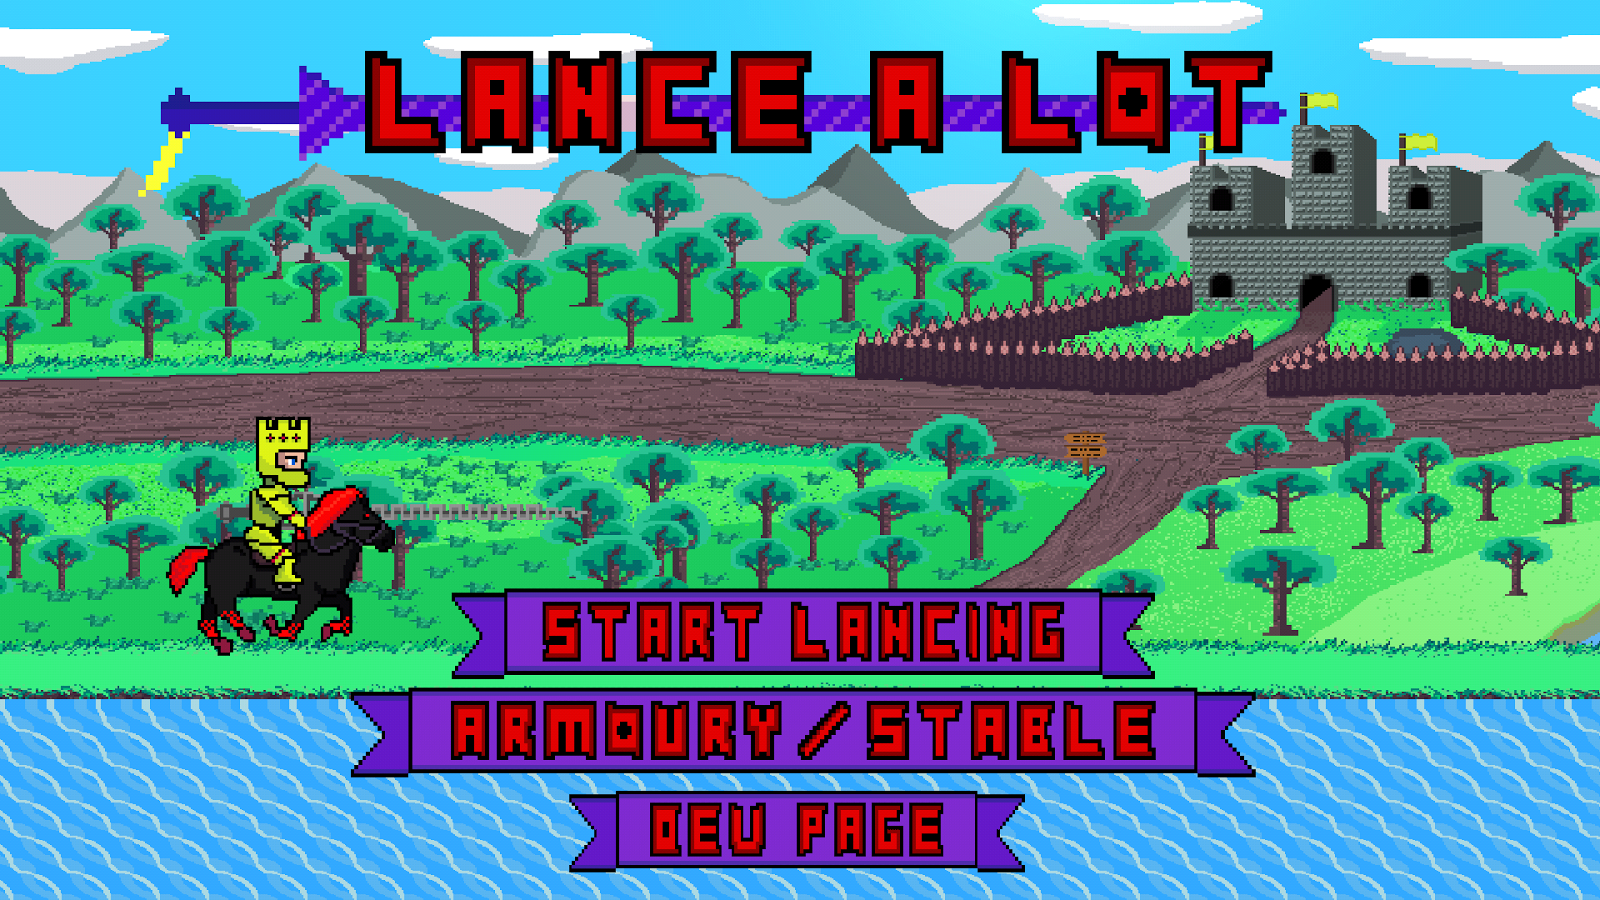 Lance-A-Lot- screenshot